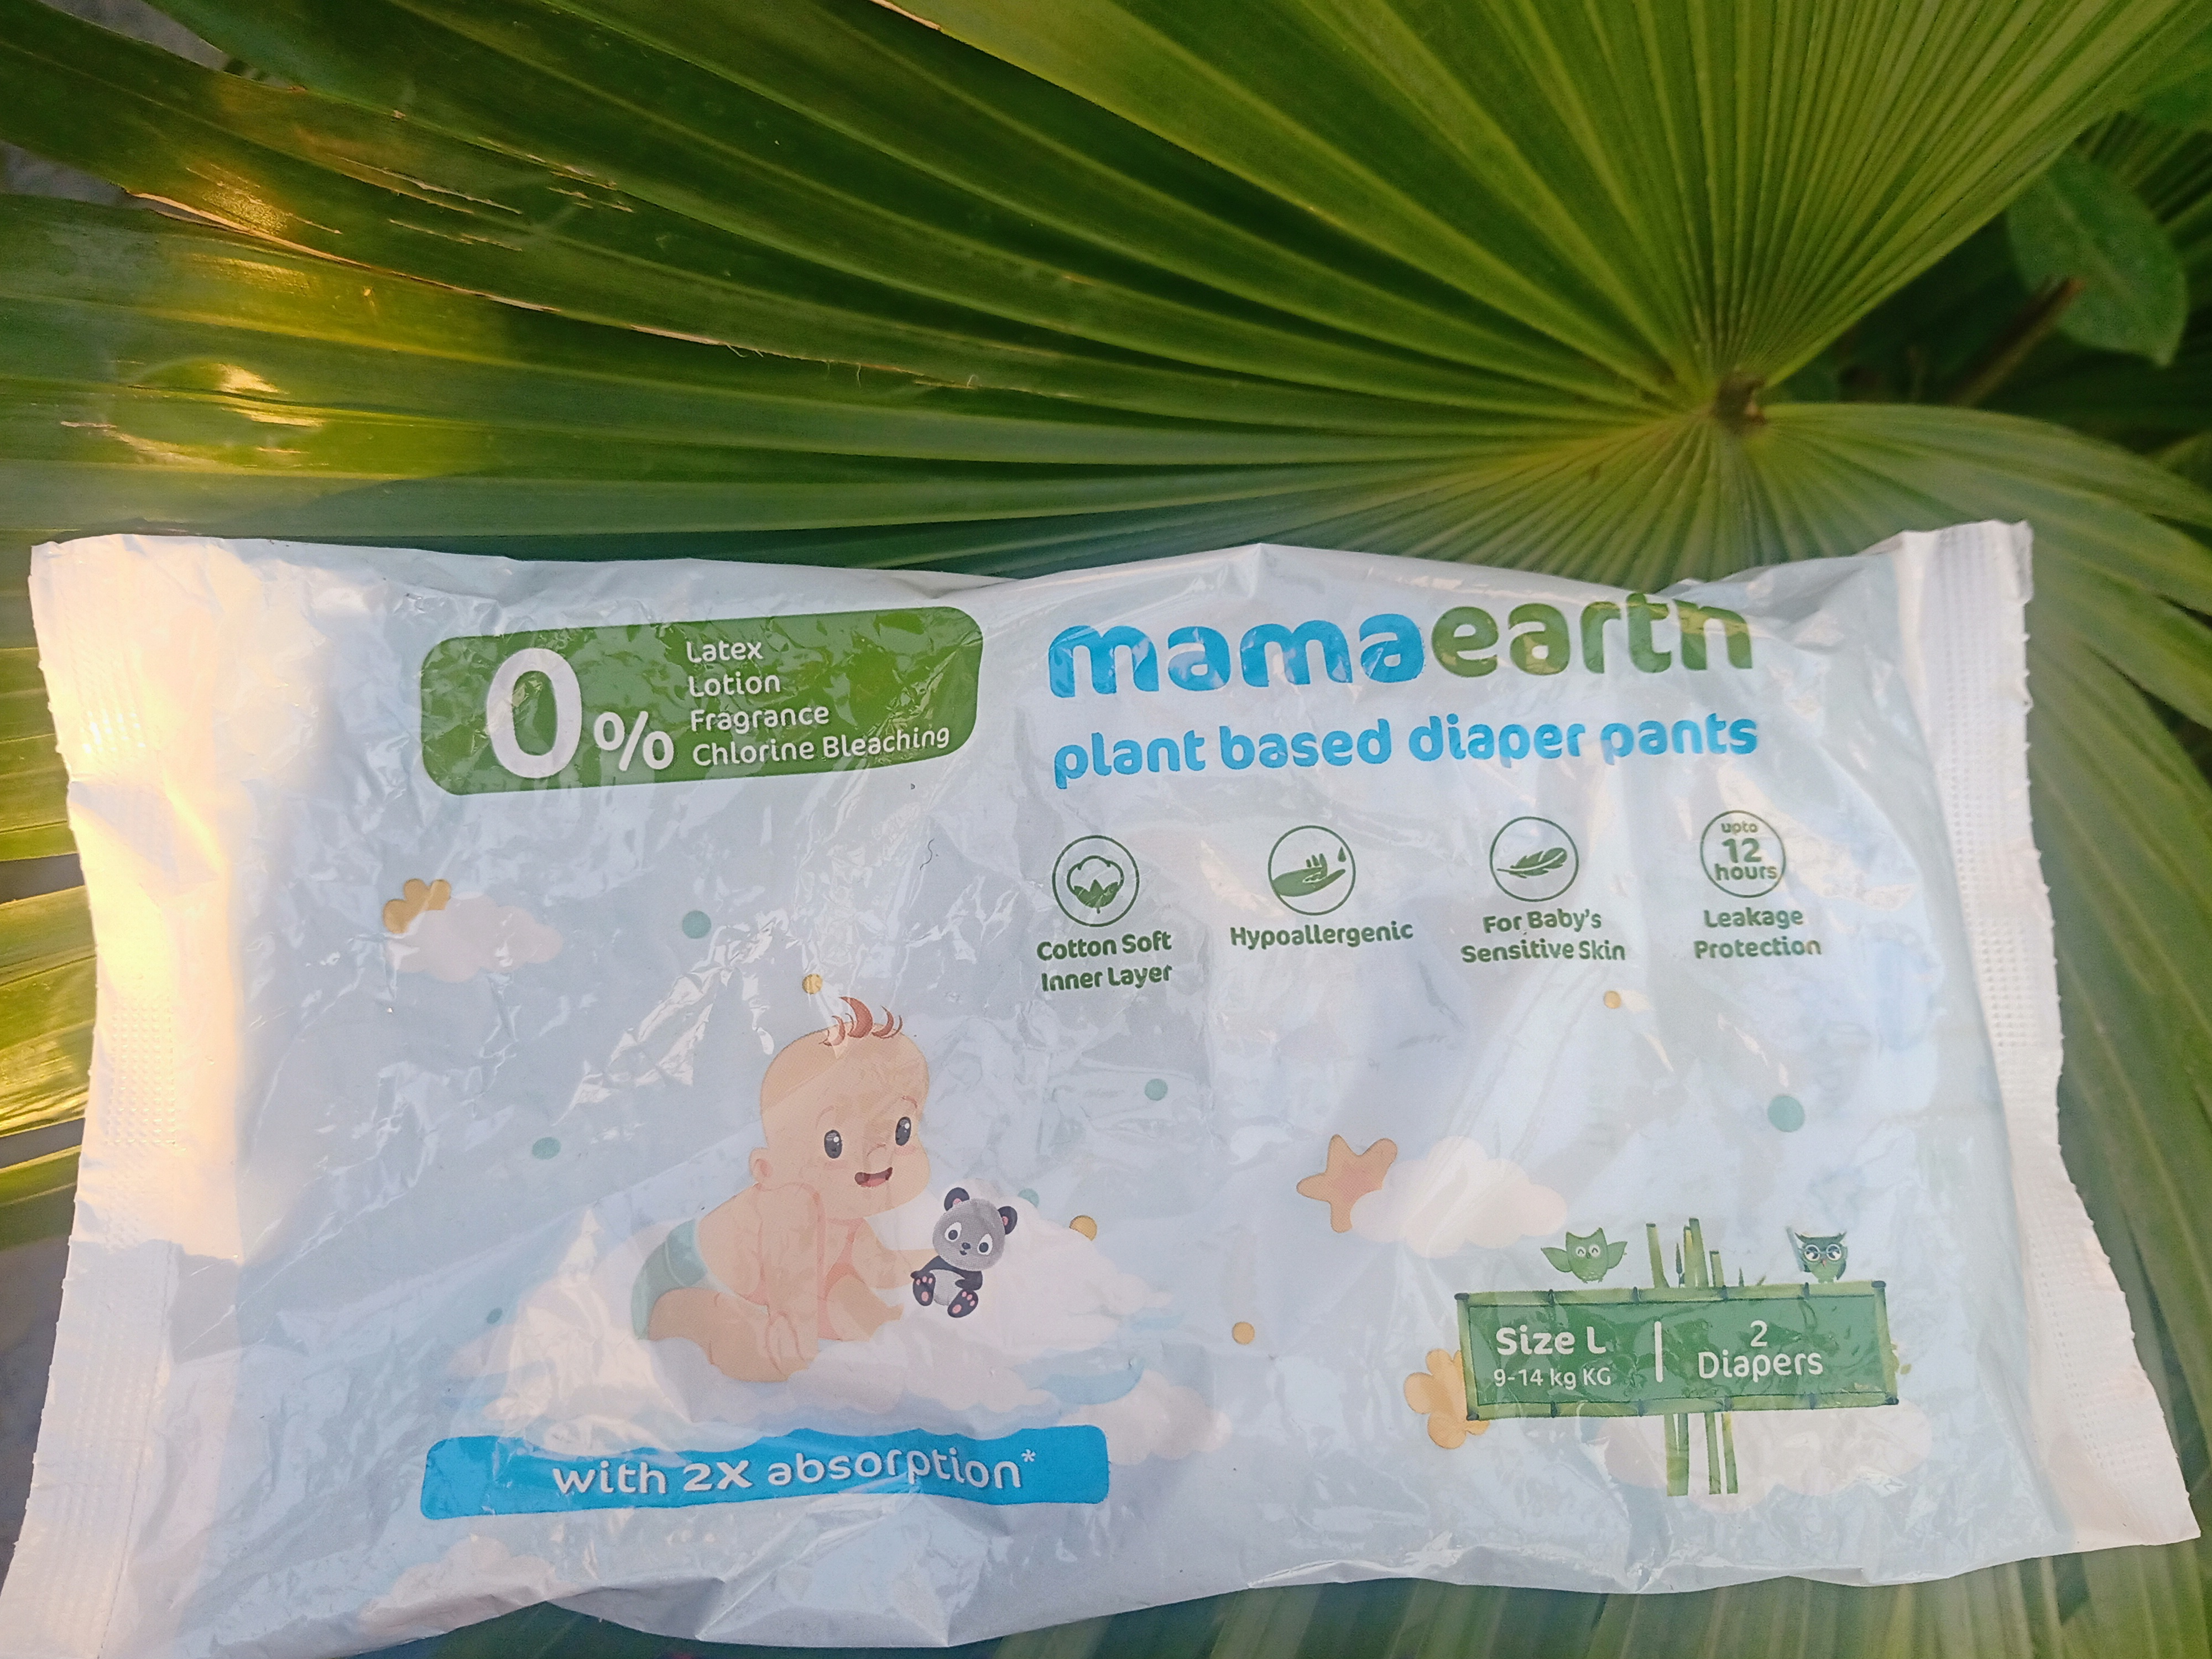 Mamaearth Plant Based Diaper Pants-Love this new diaper-By arohi_chatterji